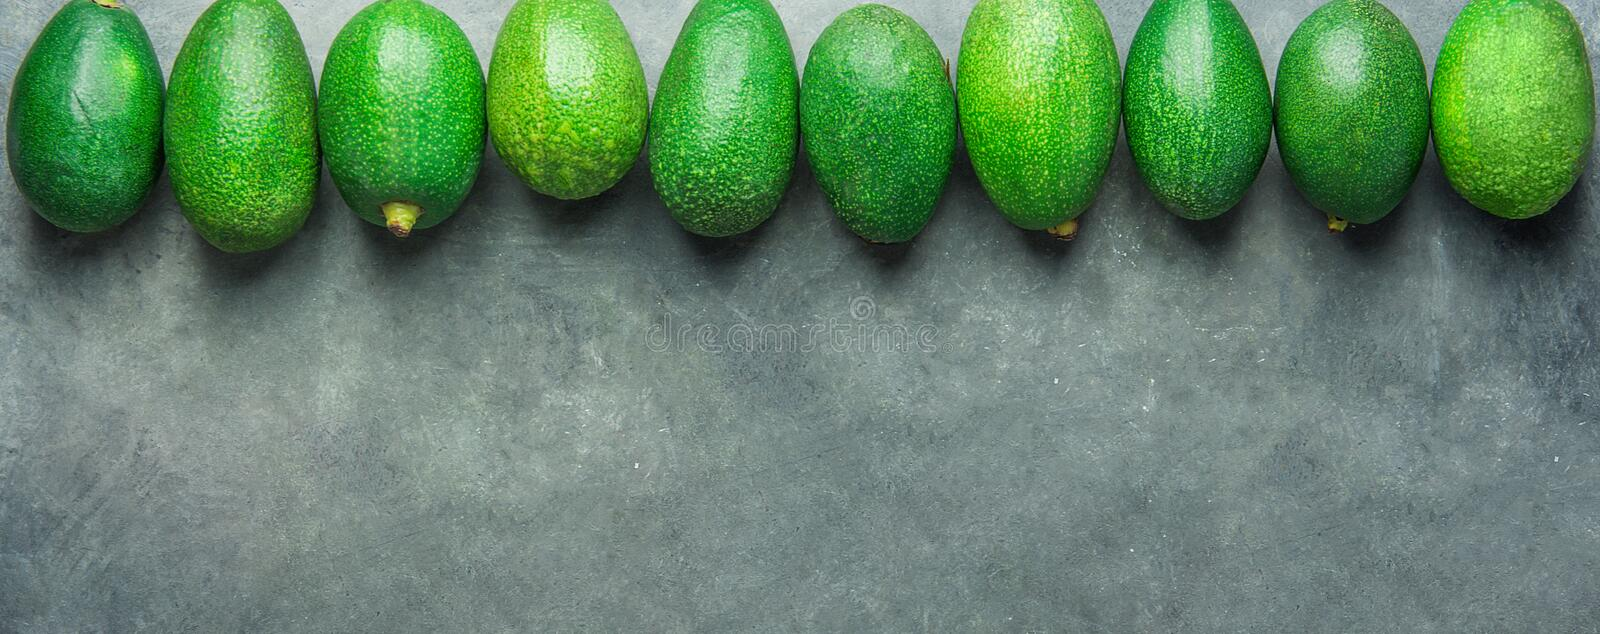 Long Banner Header. Bunch of Ripe Raw Avocados Arranged in Upper Border on Dark Stone Background. Top View Copy Space. Healthy. Lifestyle Vitamins Oil royalty free stock photography